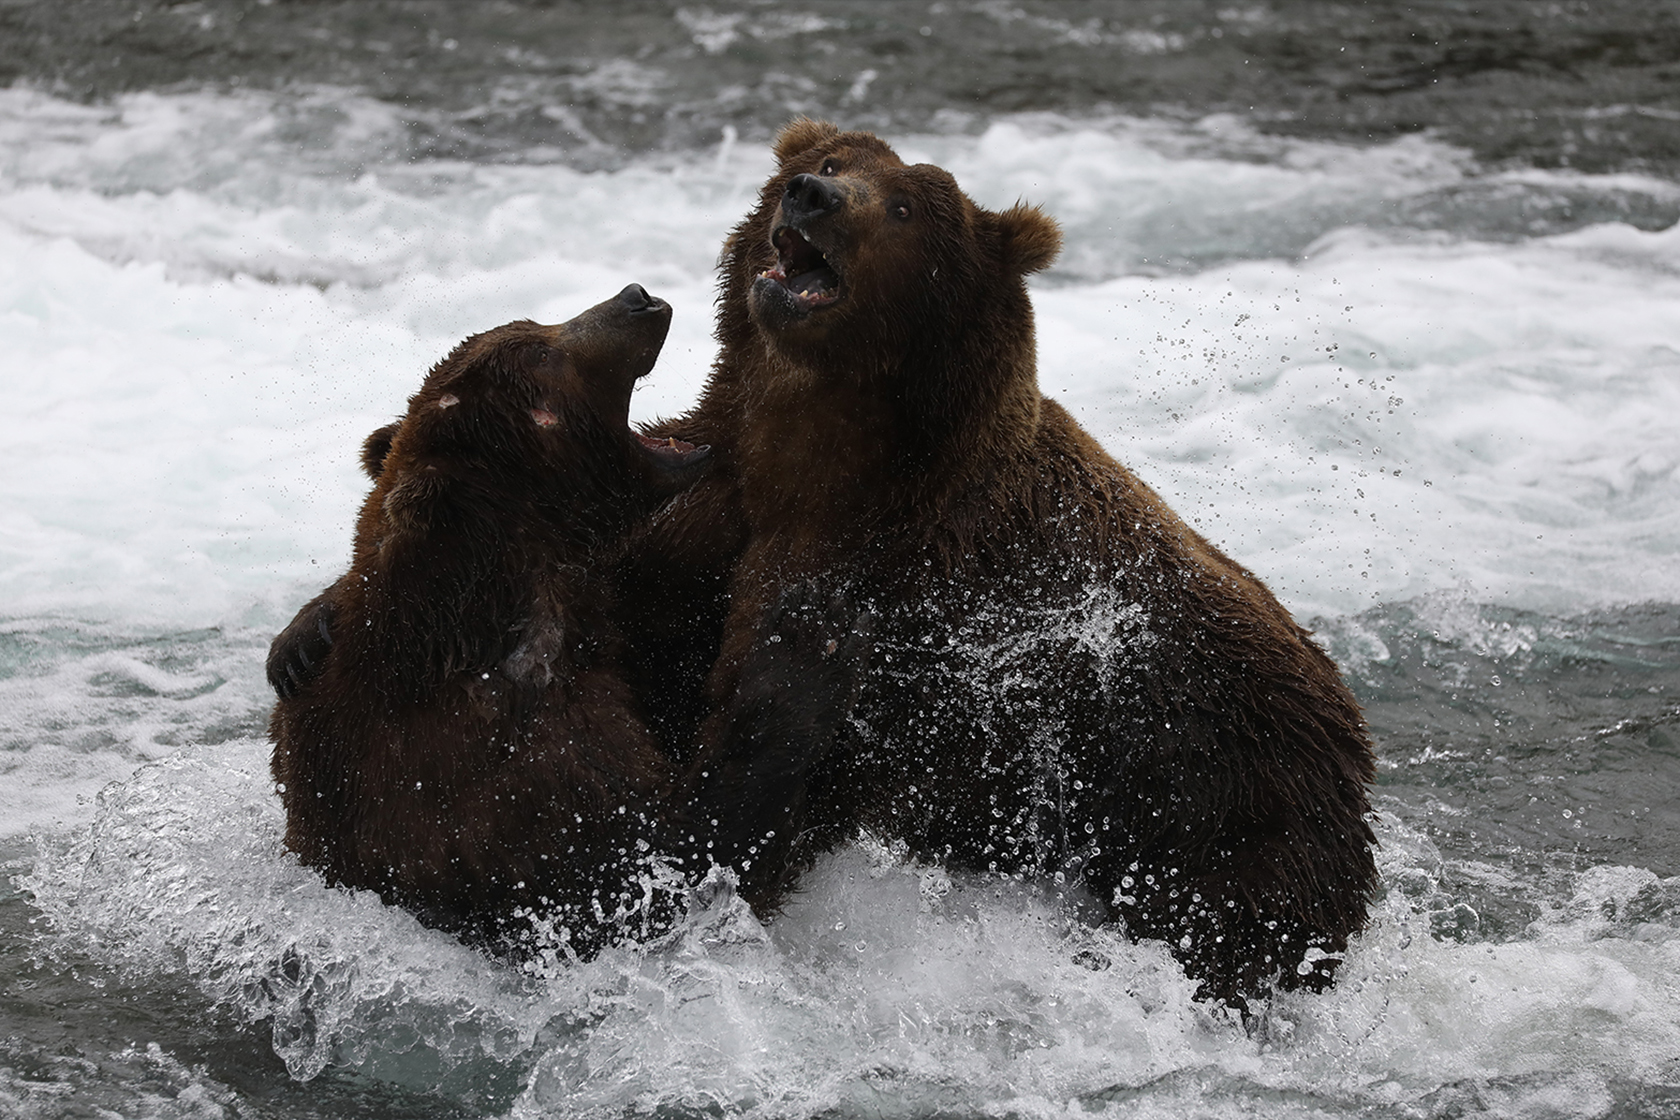 Bears fighting in the water